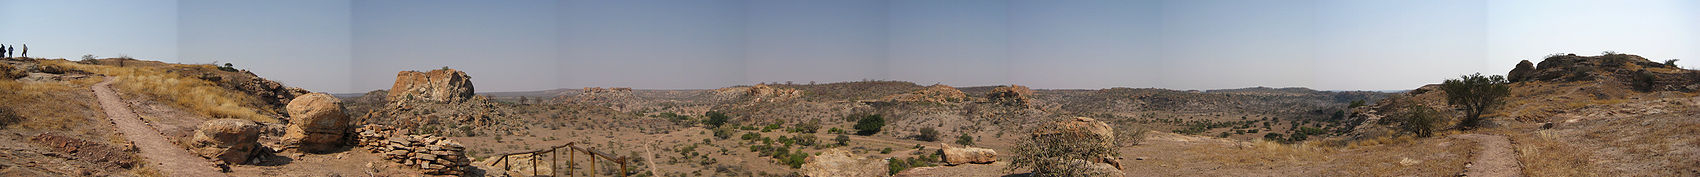 Panorama from the top of Mapungubwe Hill